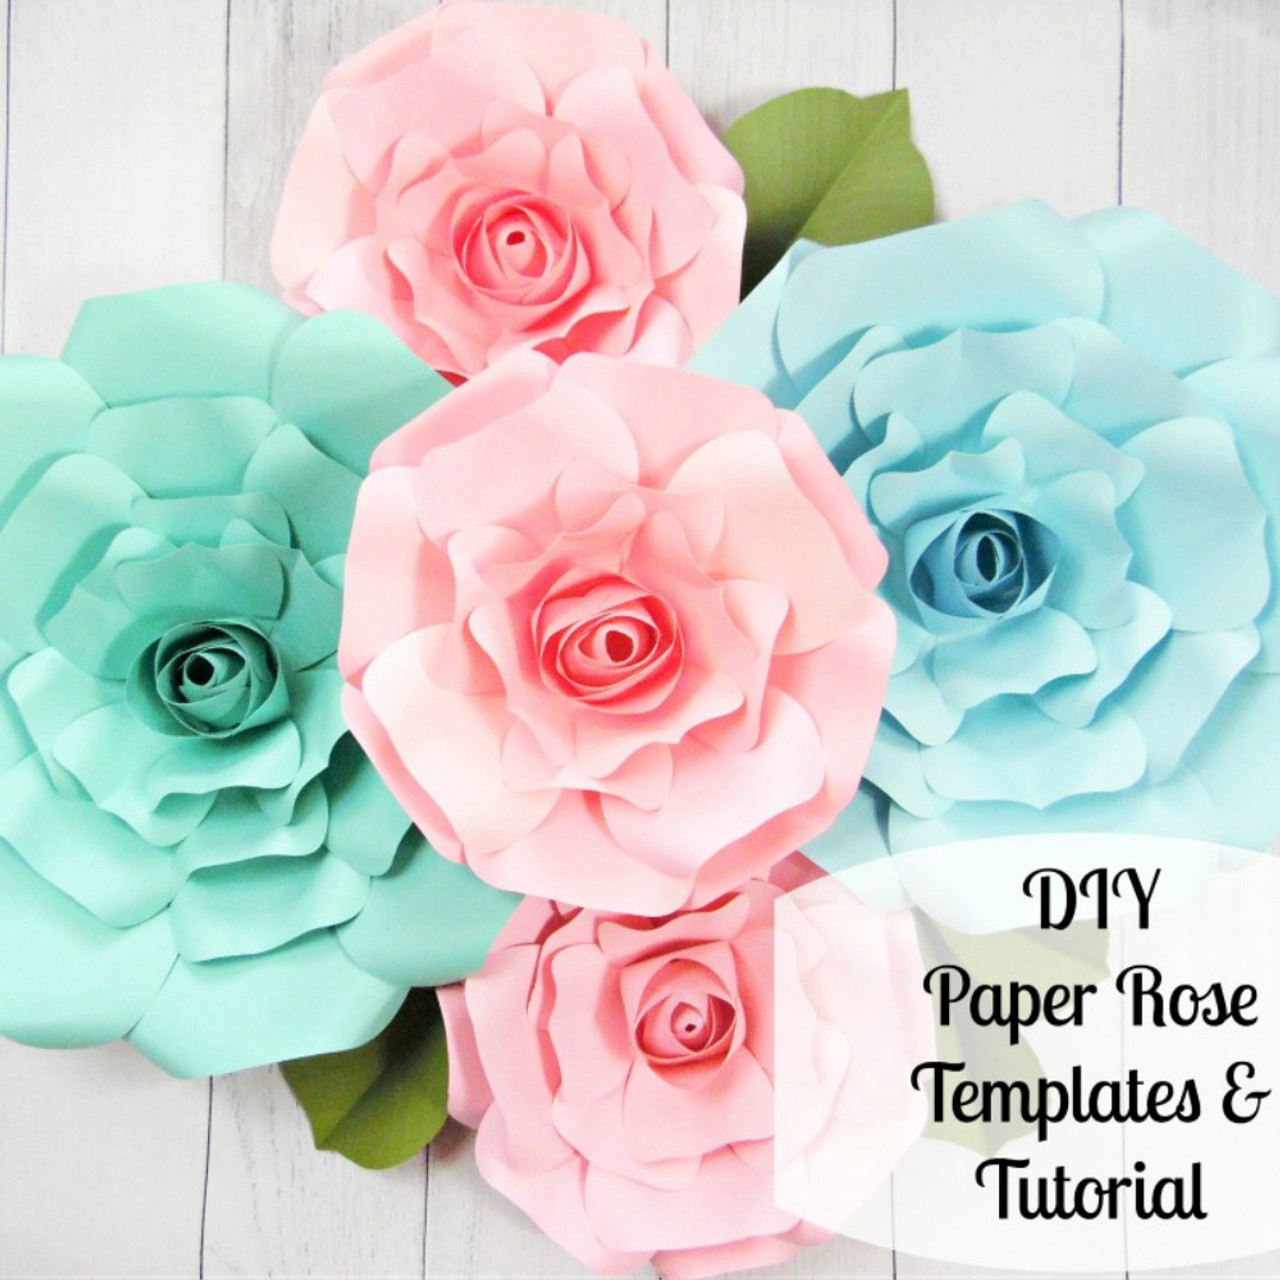 Giant Paper Rose Templates Regina Style